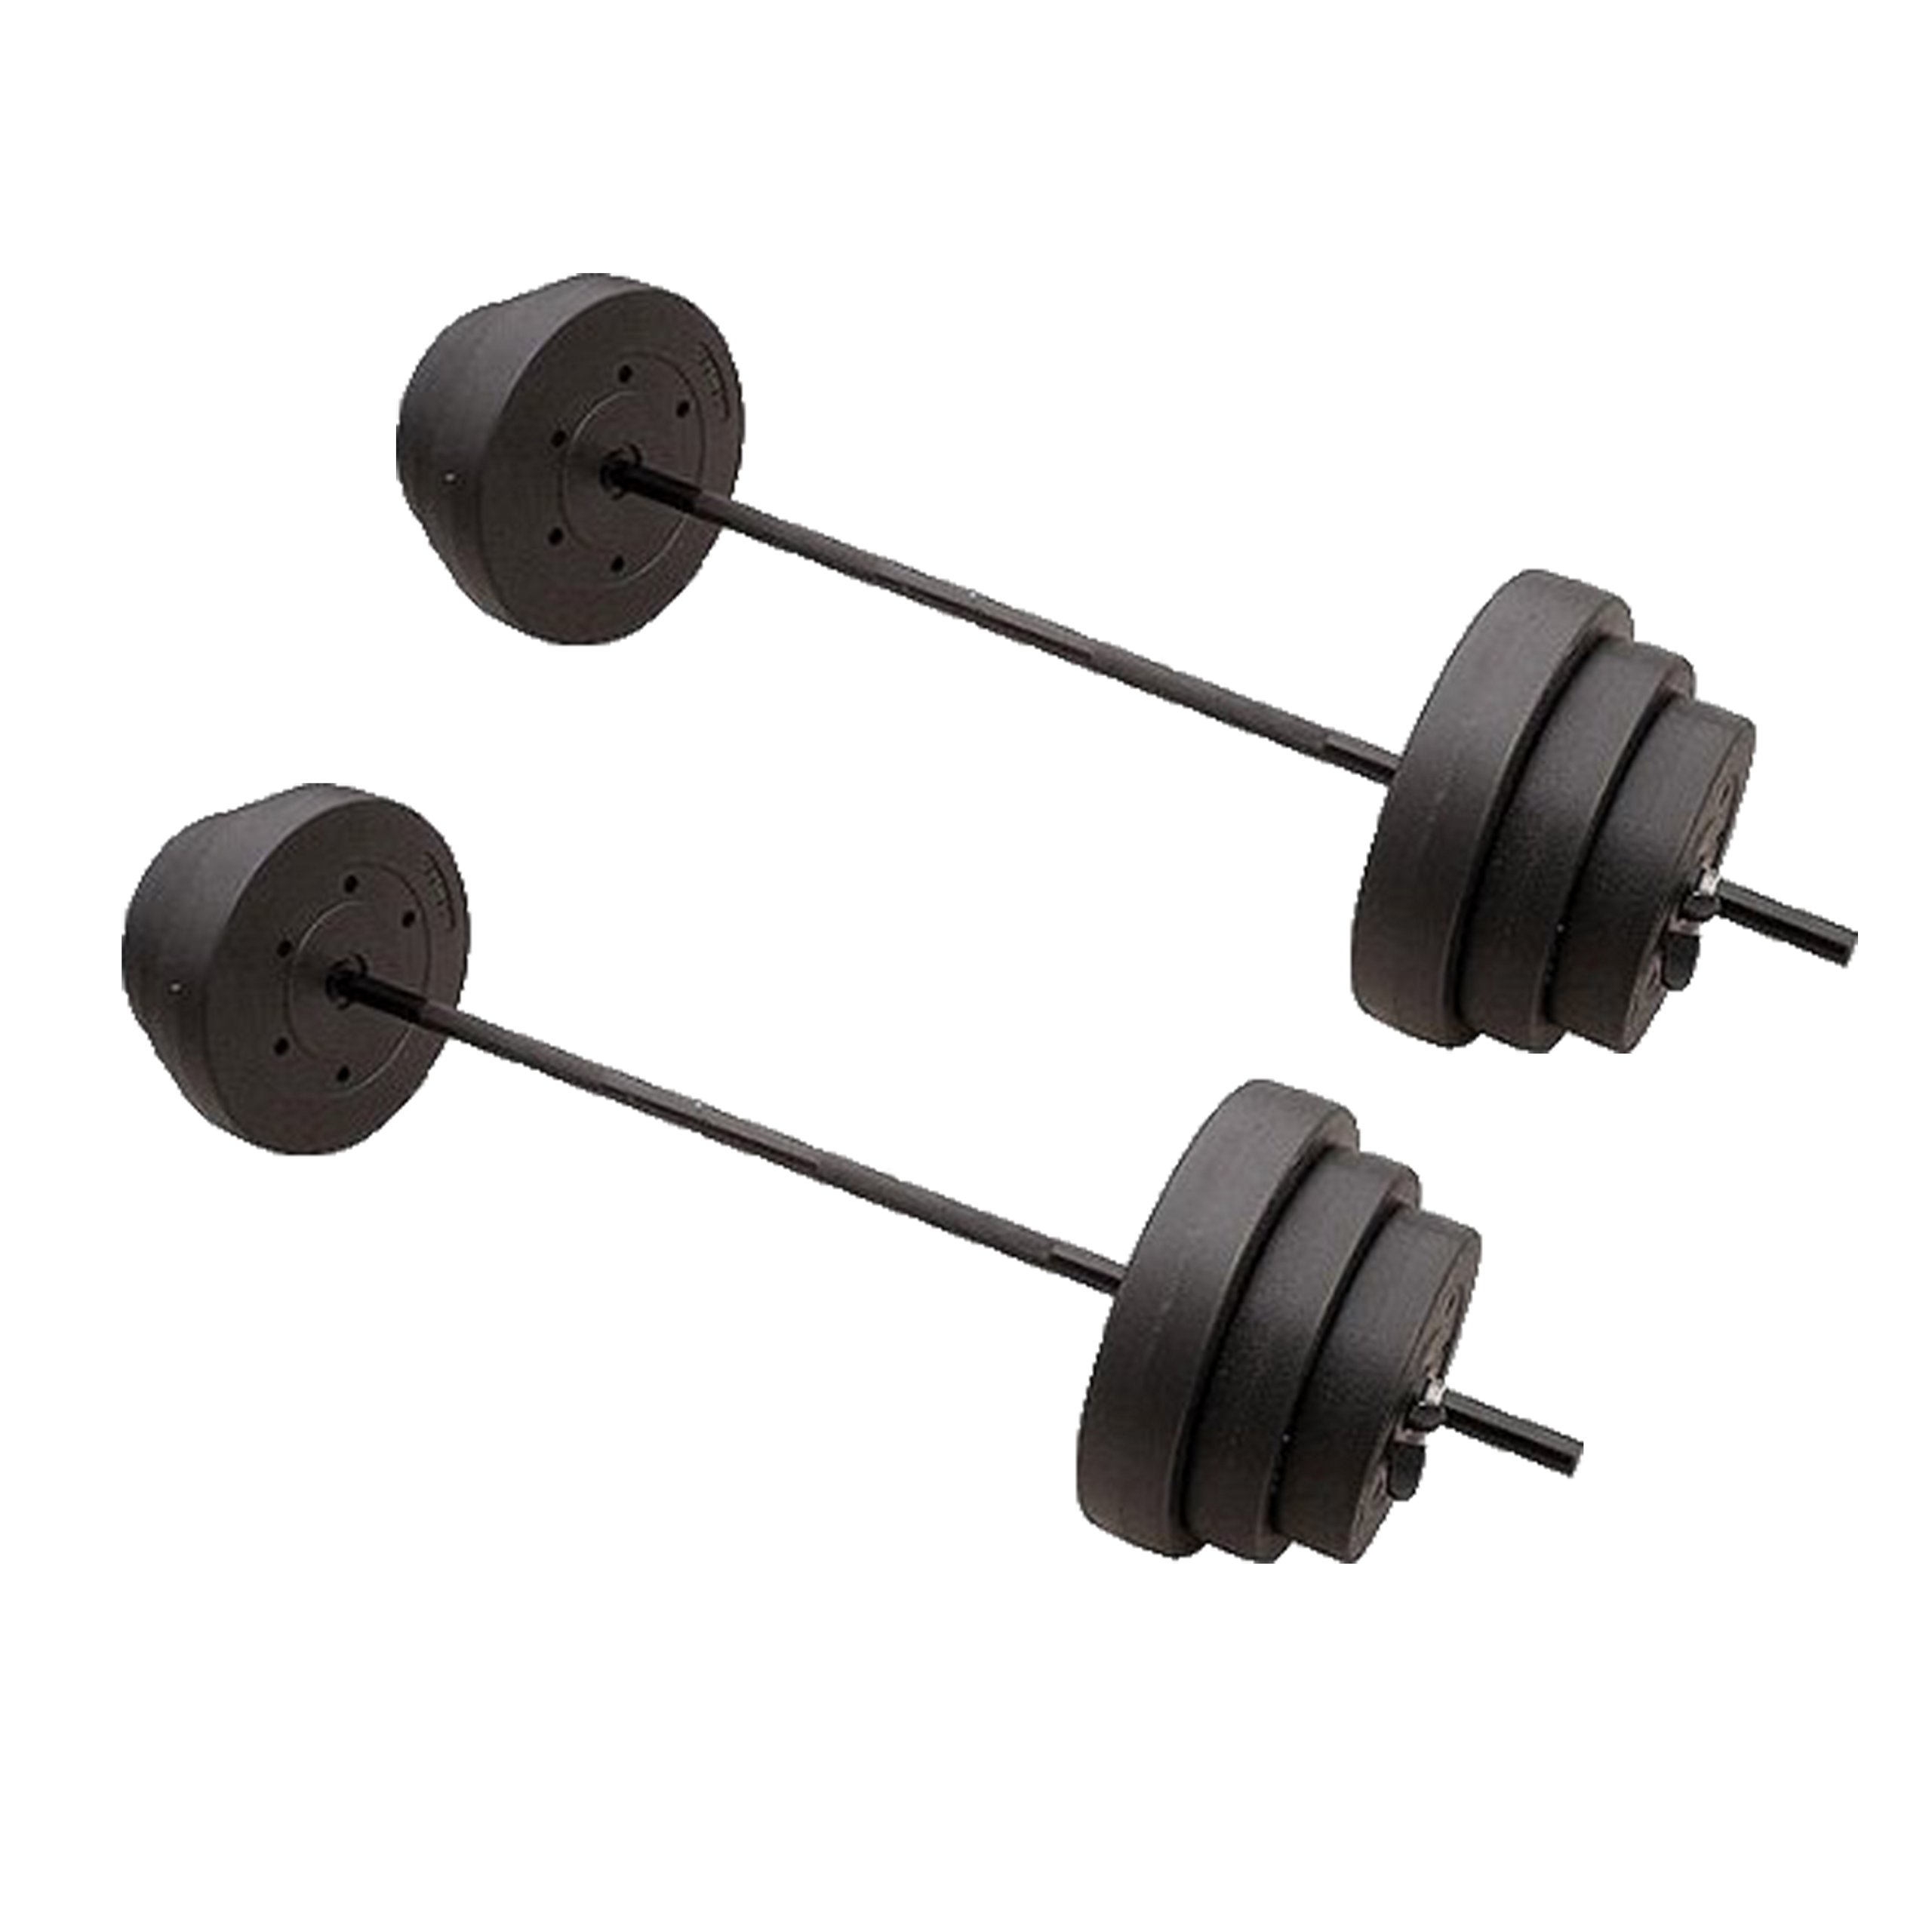 Gold's Gym 100 lbs Pounds Cement Barbell Weight Set (2 SETS)